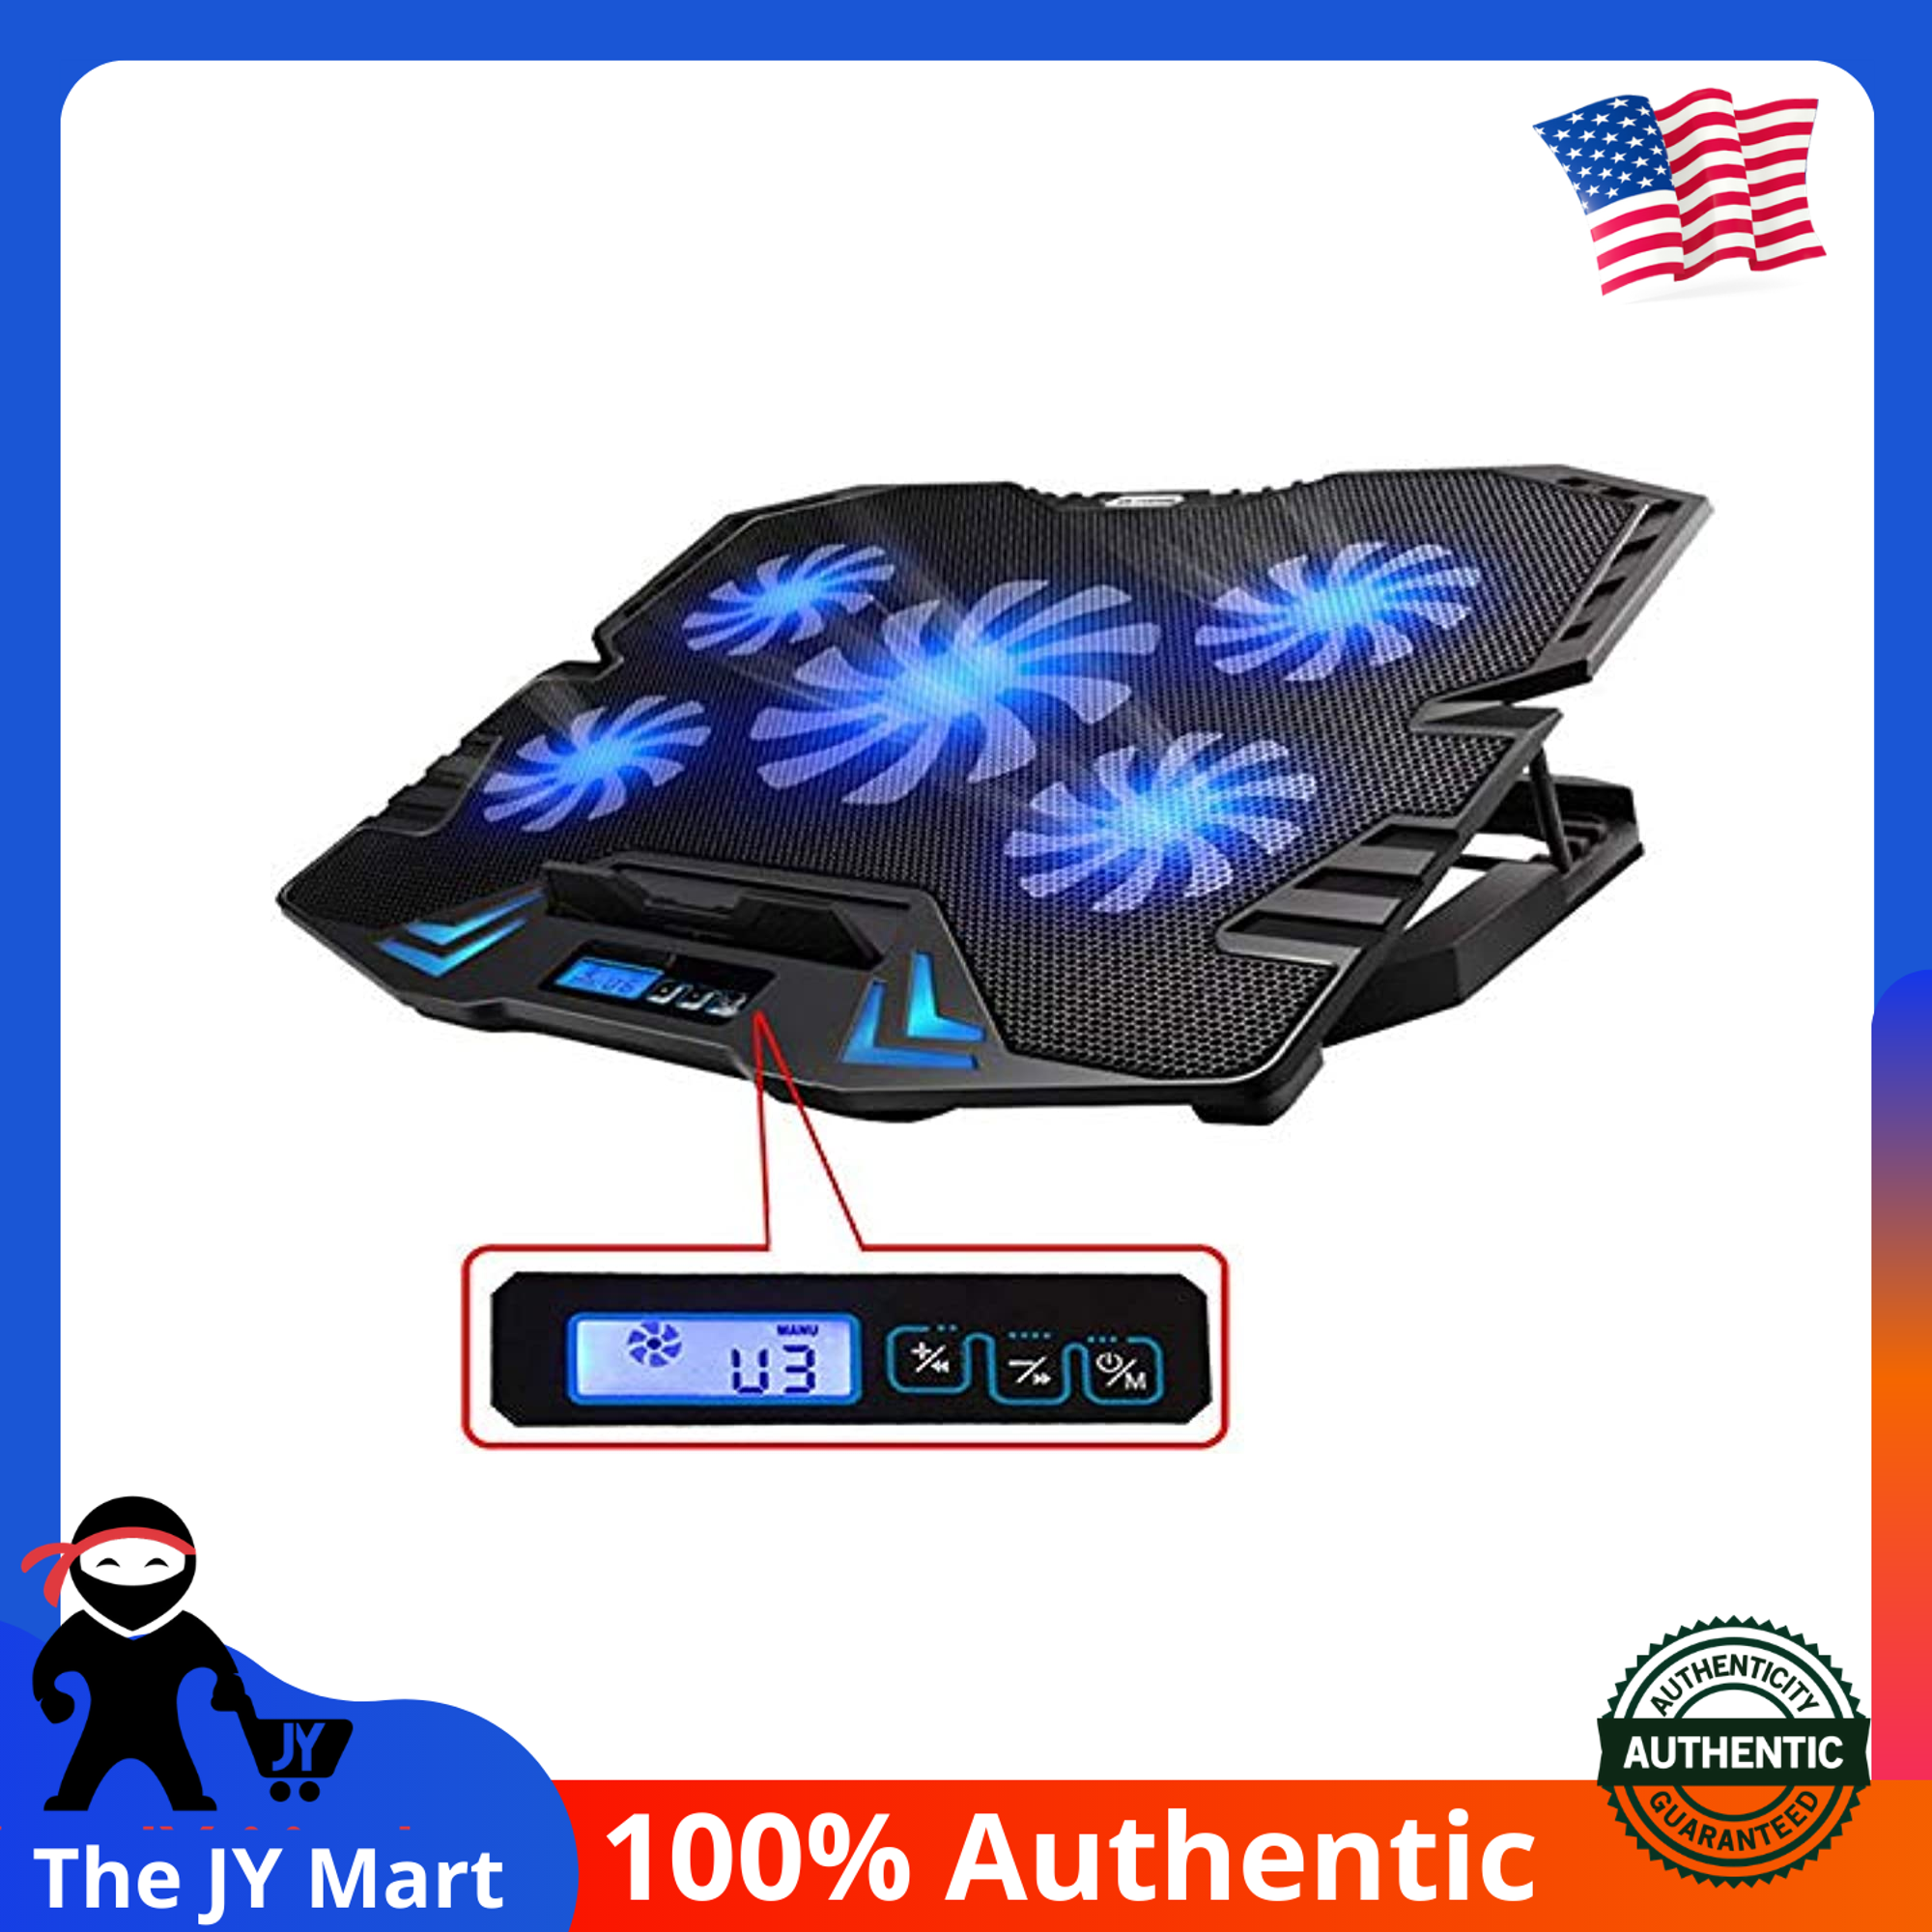 Topmate C5 12 15 6 Inch Gaming Laptop Cooler Cooling Pad 5 Quiet Fans And Lcd Screen 2500rpm Strong Wind Designed For Gamers And Office Lazada Singapore